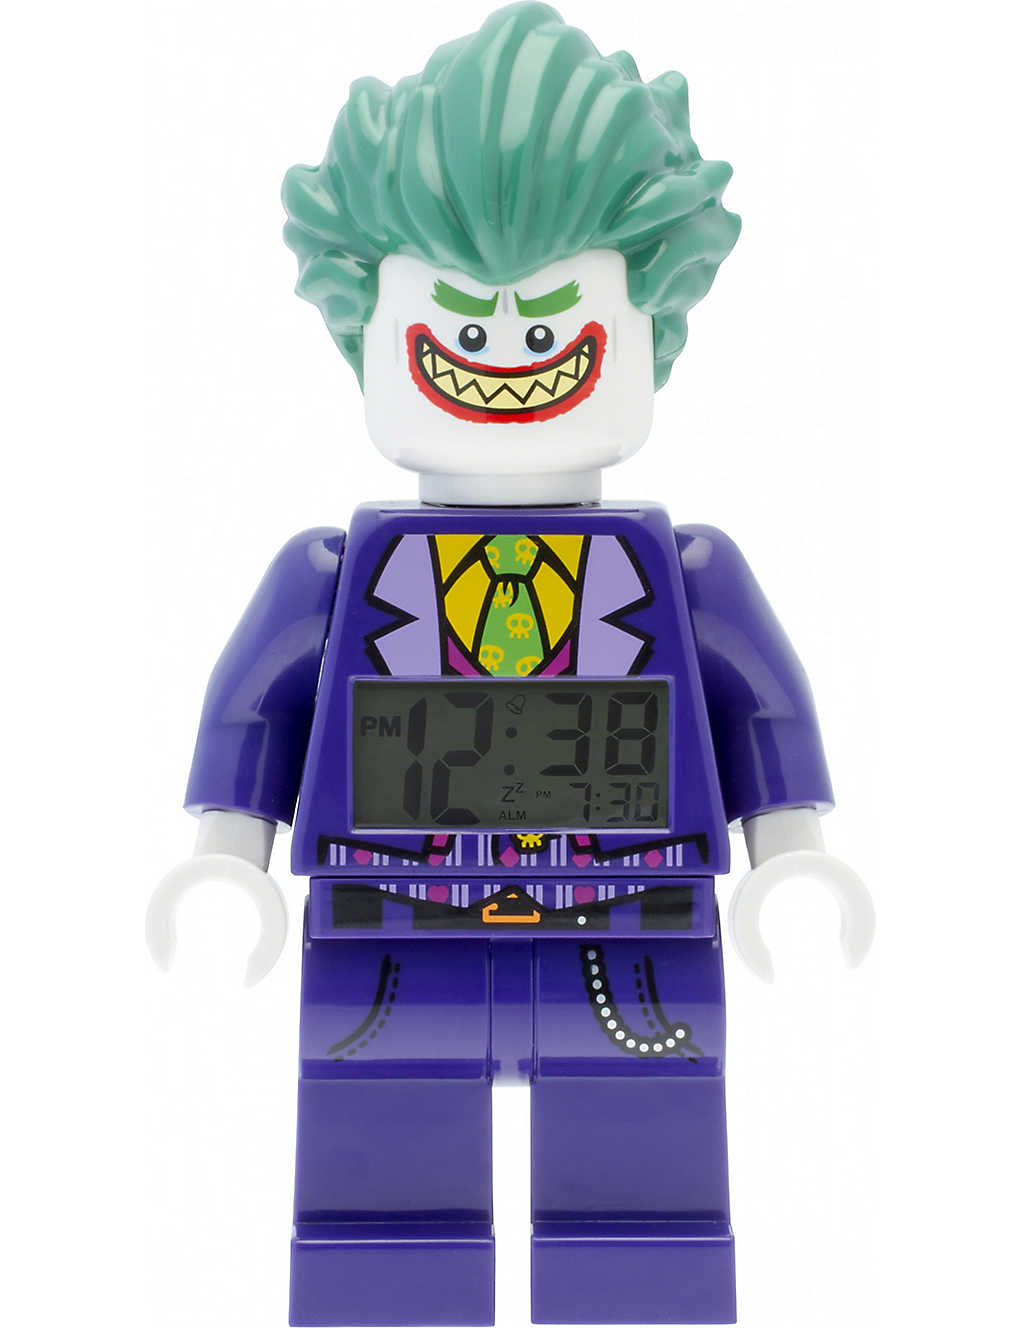 Lego Batman Movie Joker Alarm Clock Selfridges Com